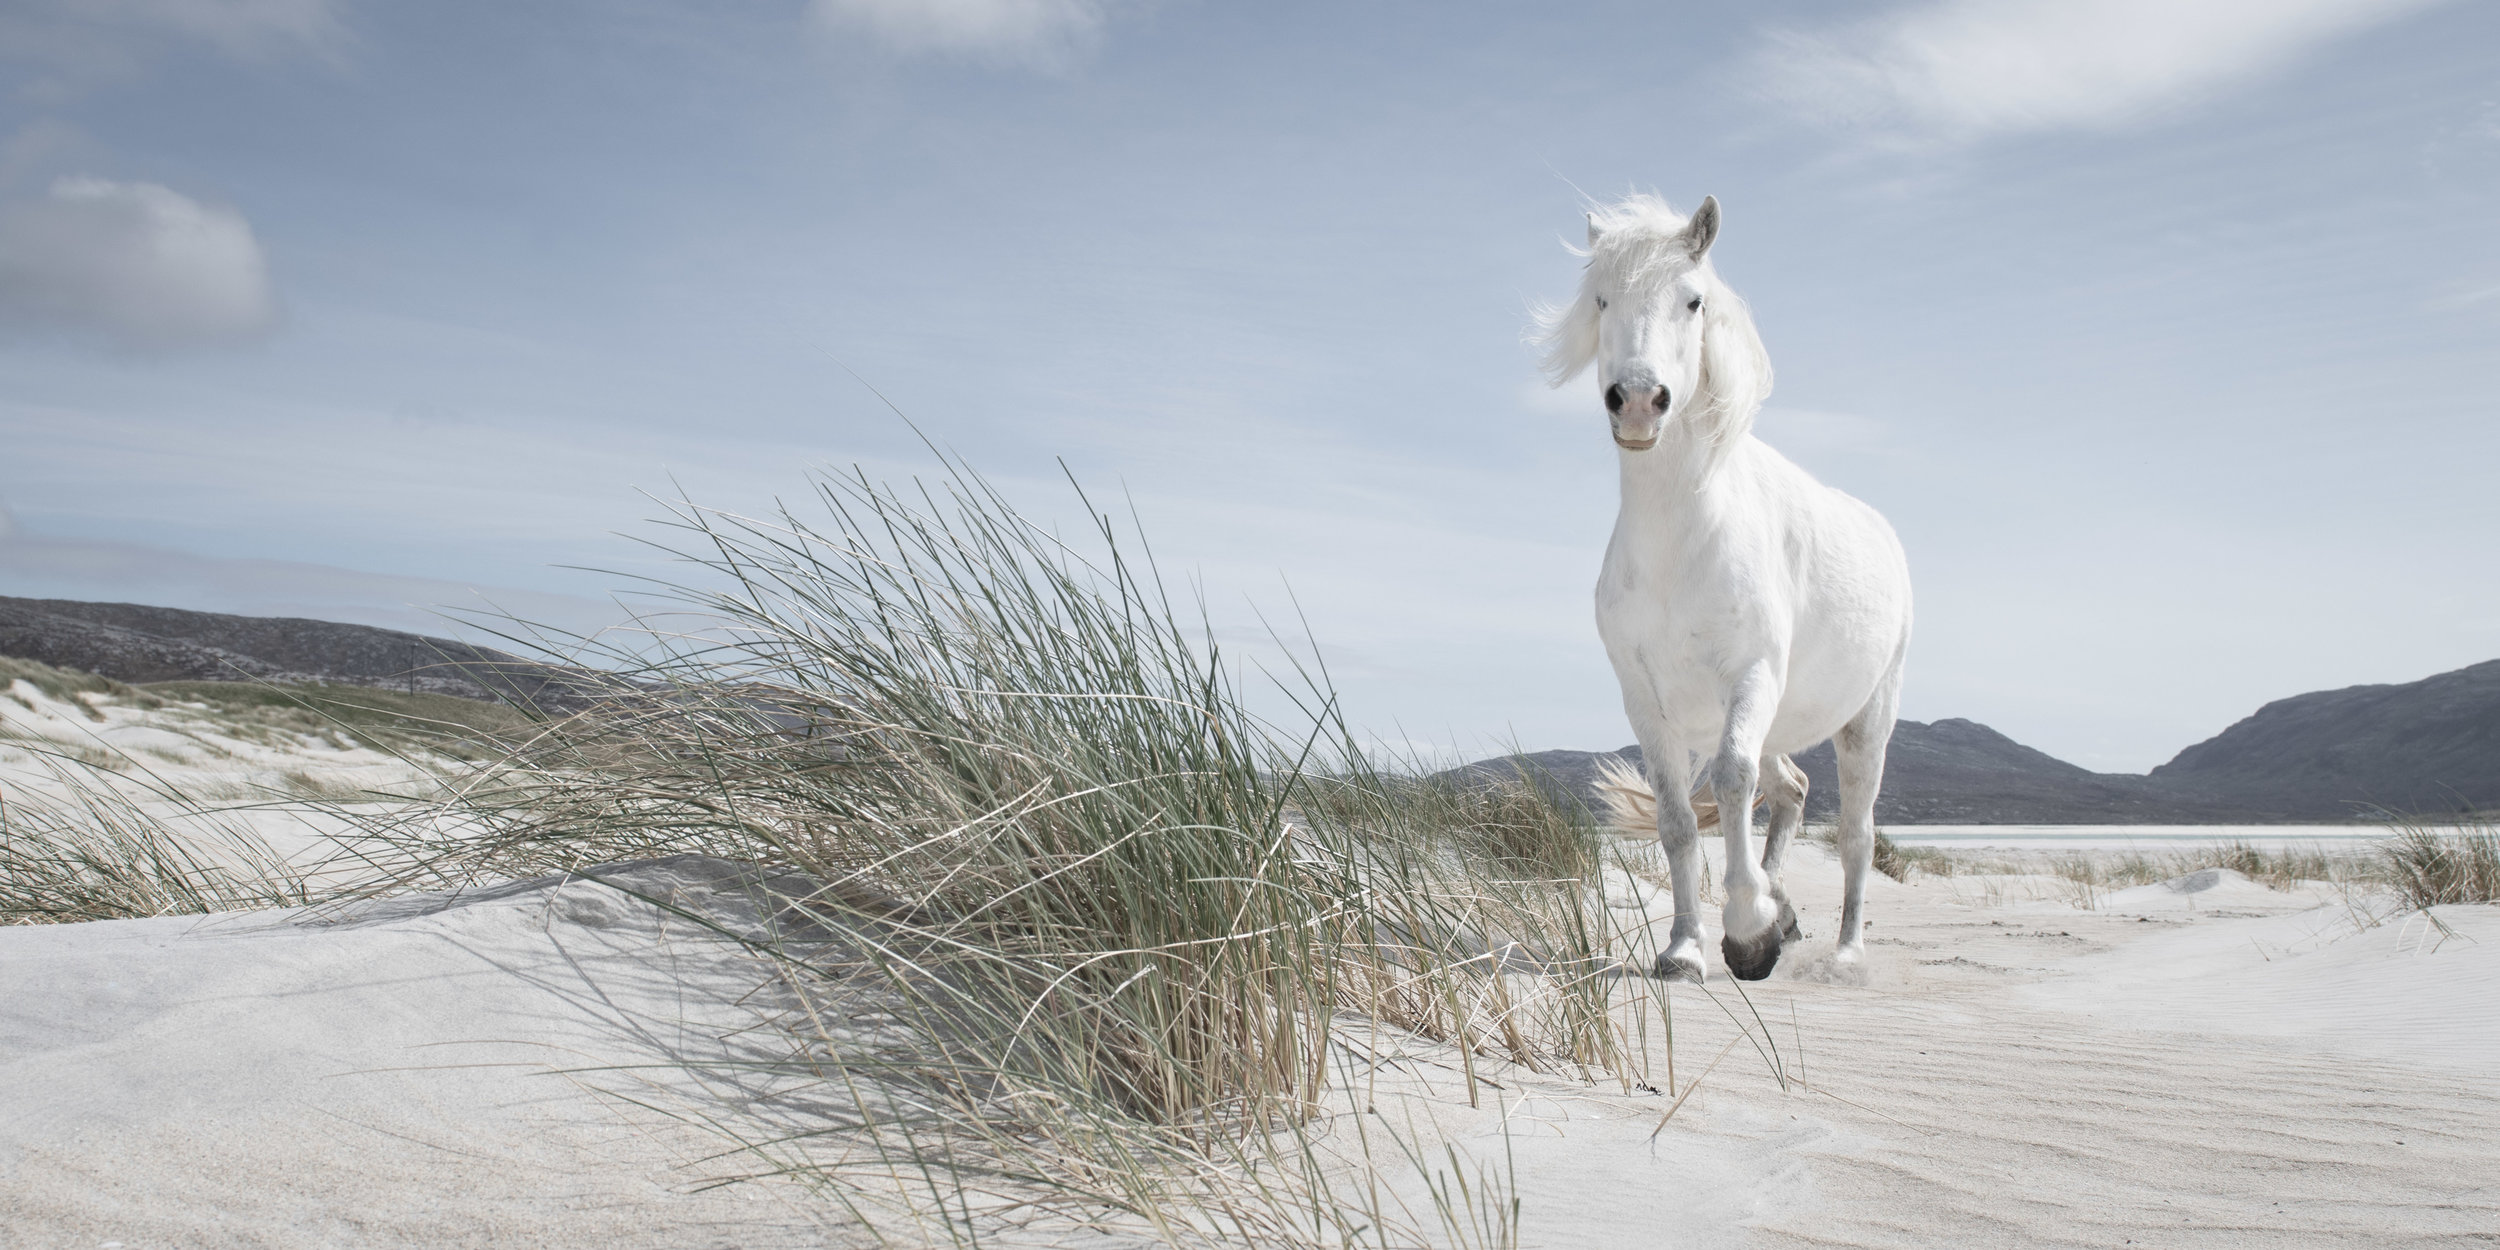 The White Horse of Luskentyre